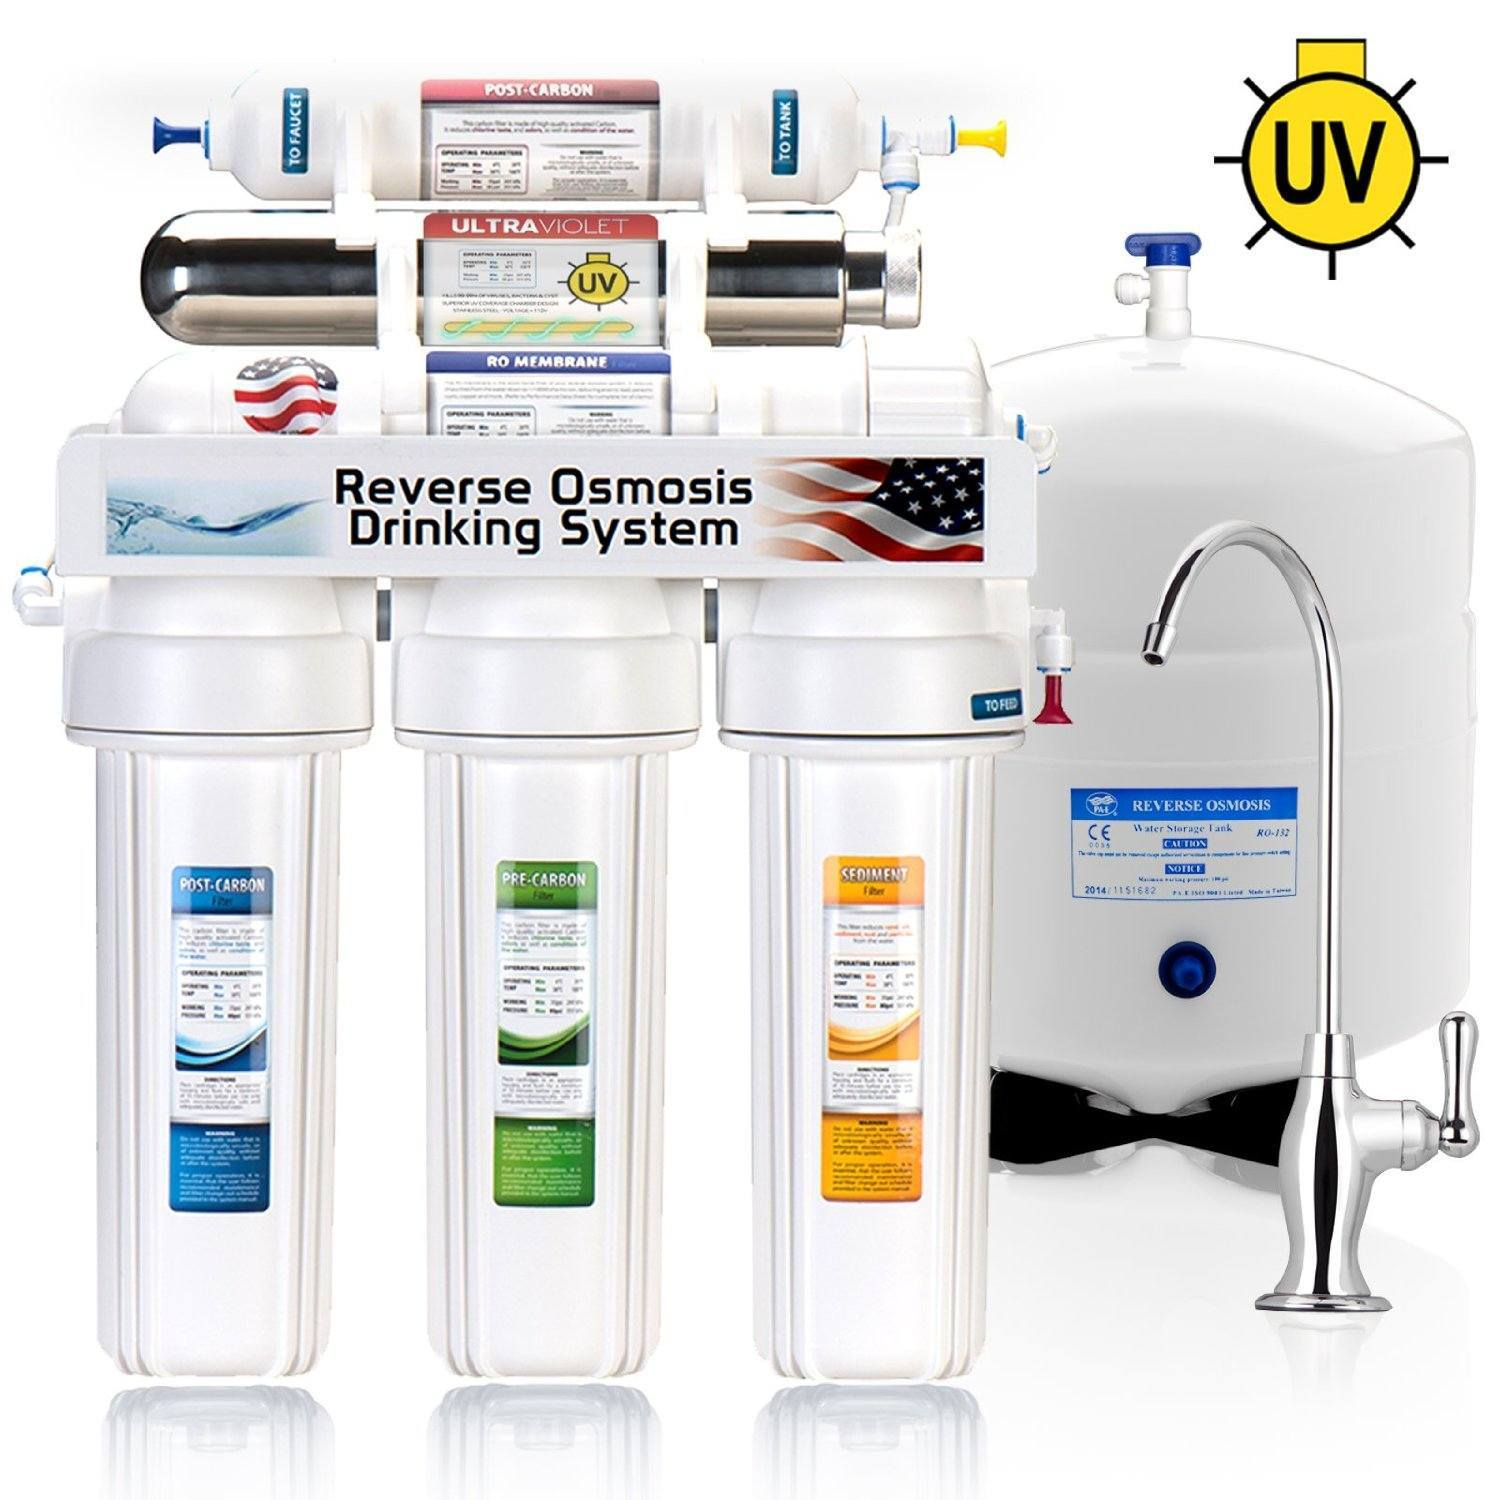 Express Water 6 Stage UV Ultra-Violet Sterilizer Reverse Osmosis